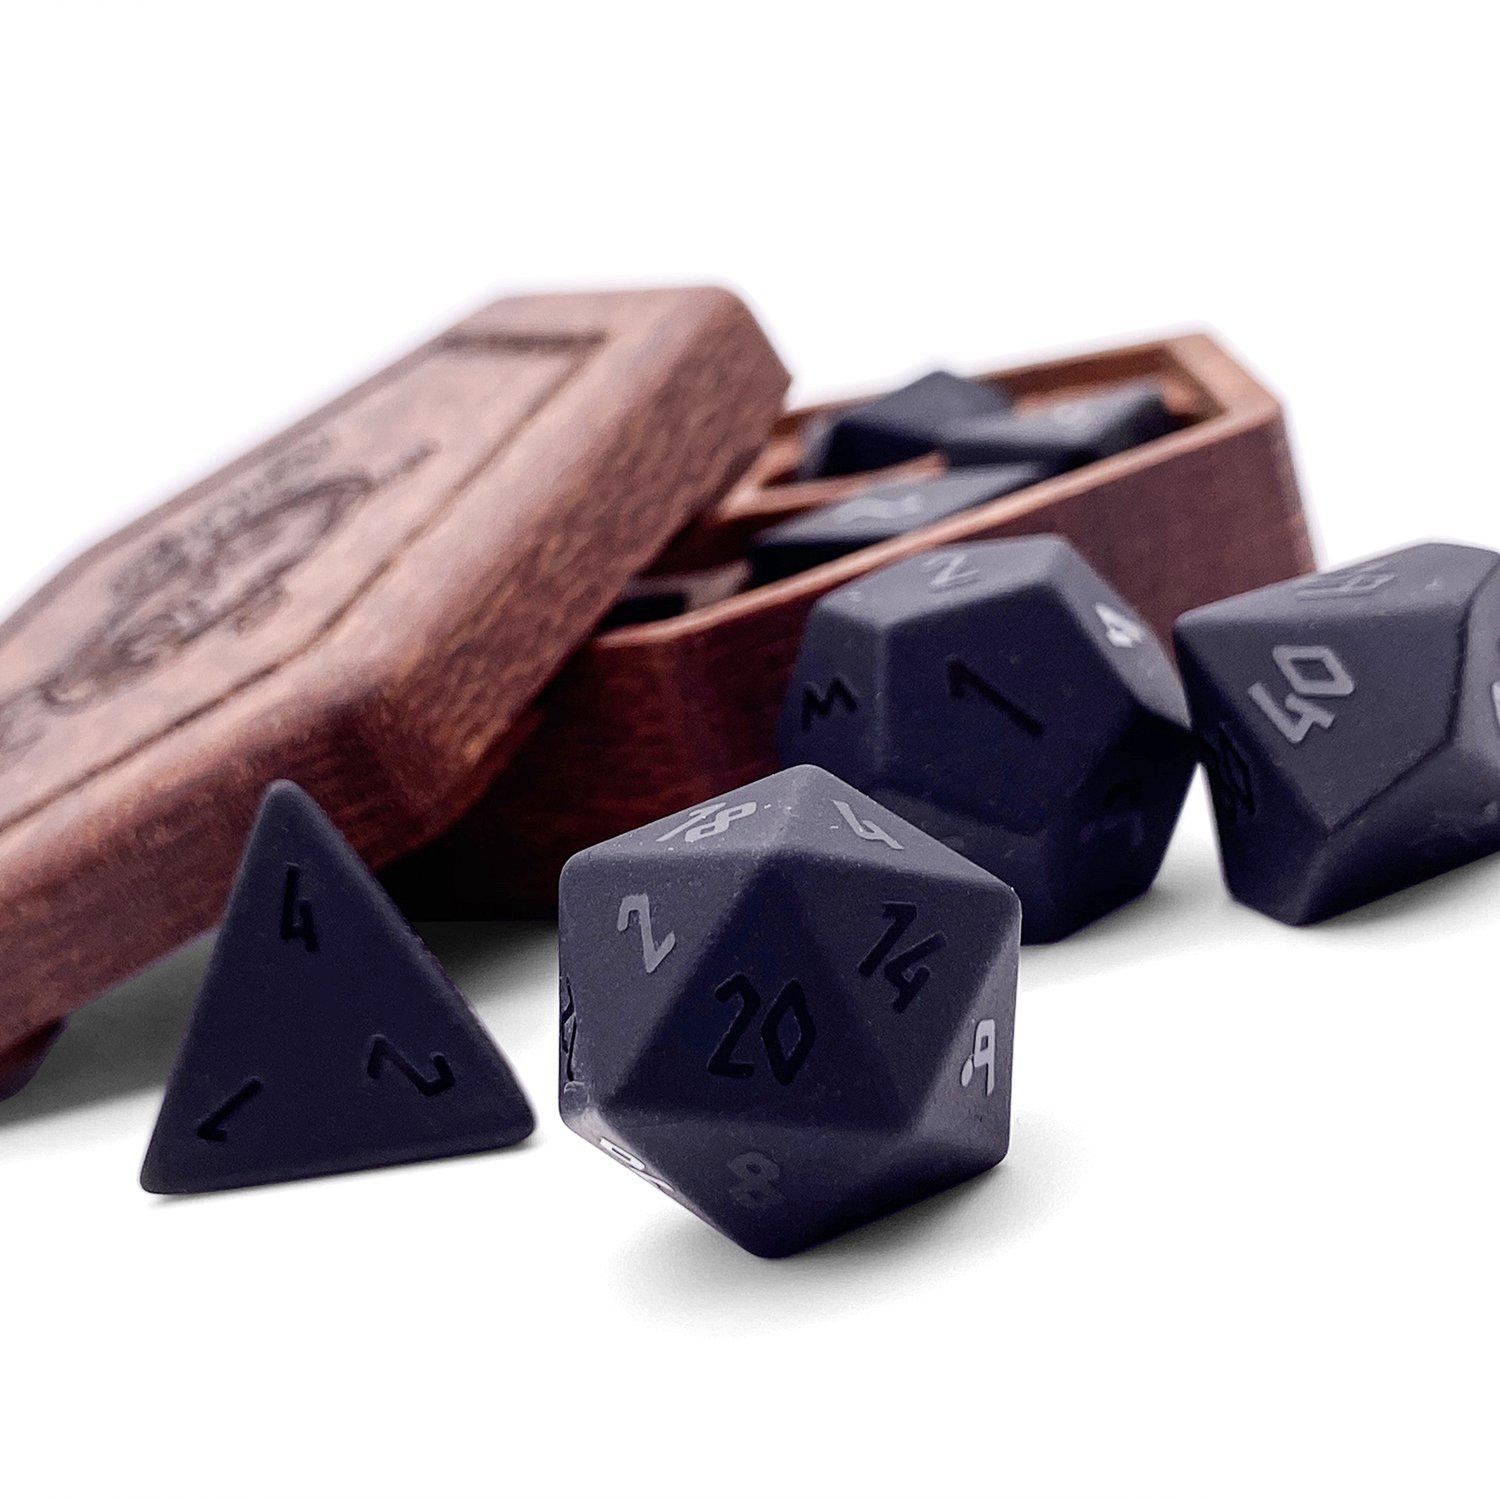 Black Raised Obsidian Gemstone 7 piece RPG Dice Set